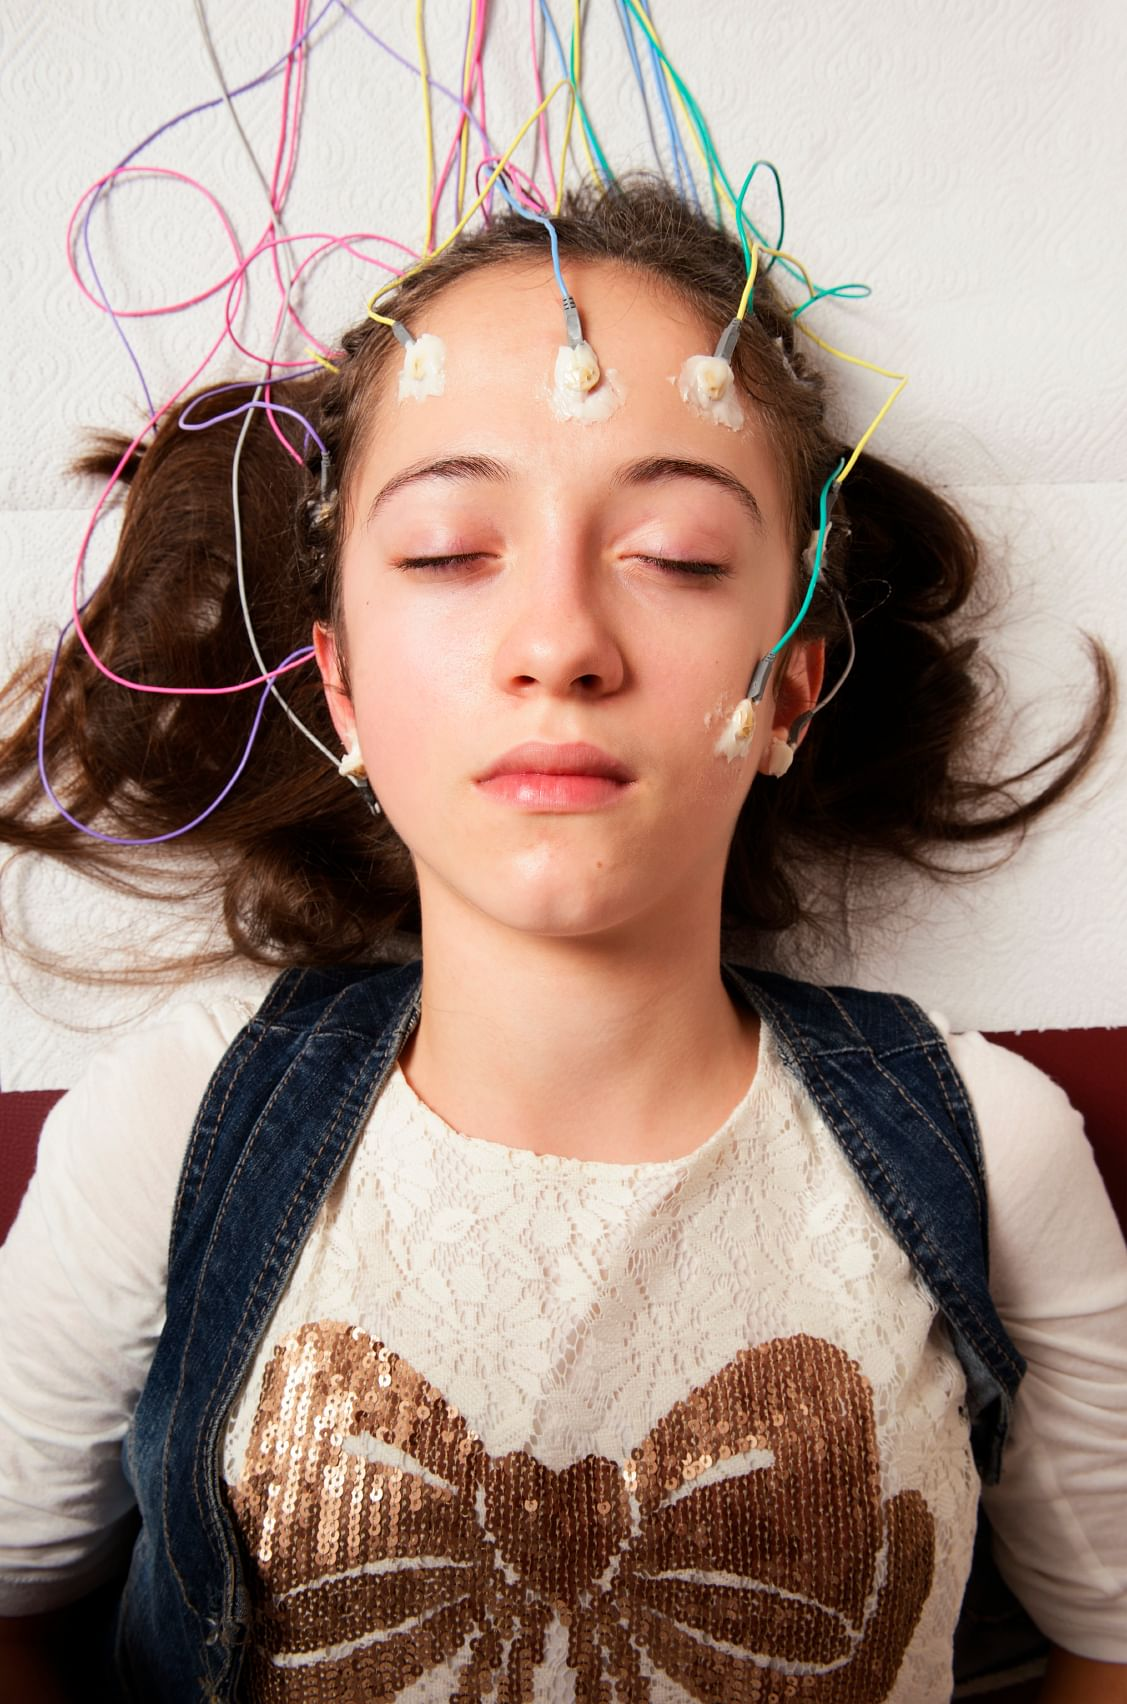 Dravet syndrome can cause mental and physical development delays in kids. Currently there is no cure or standard treatment for it (Photo: iStock)